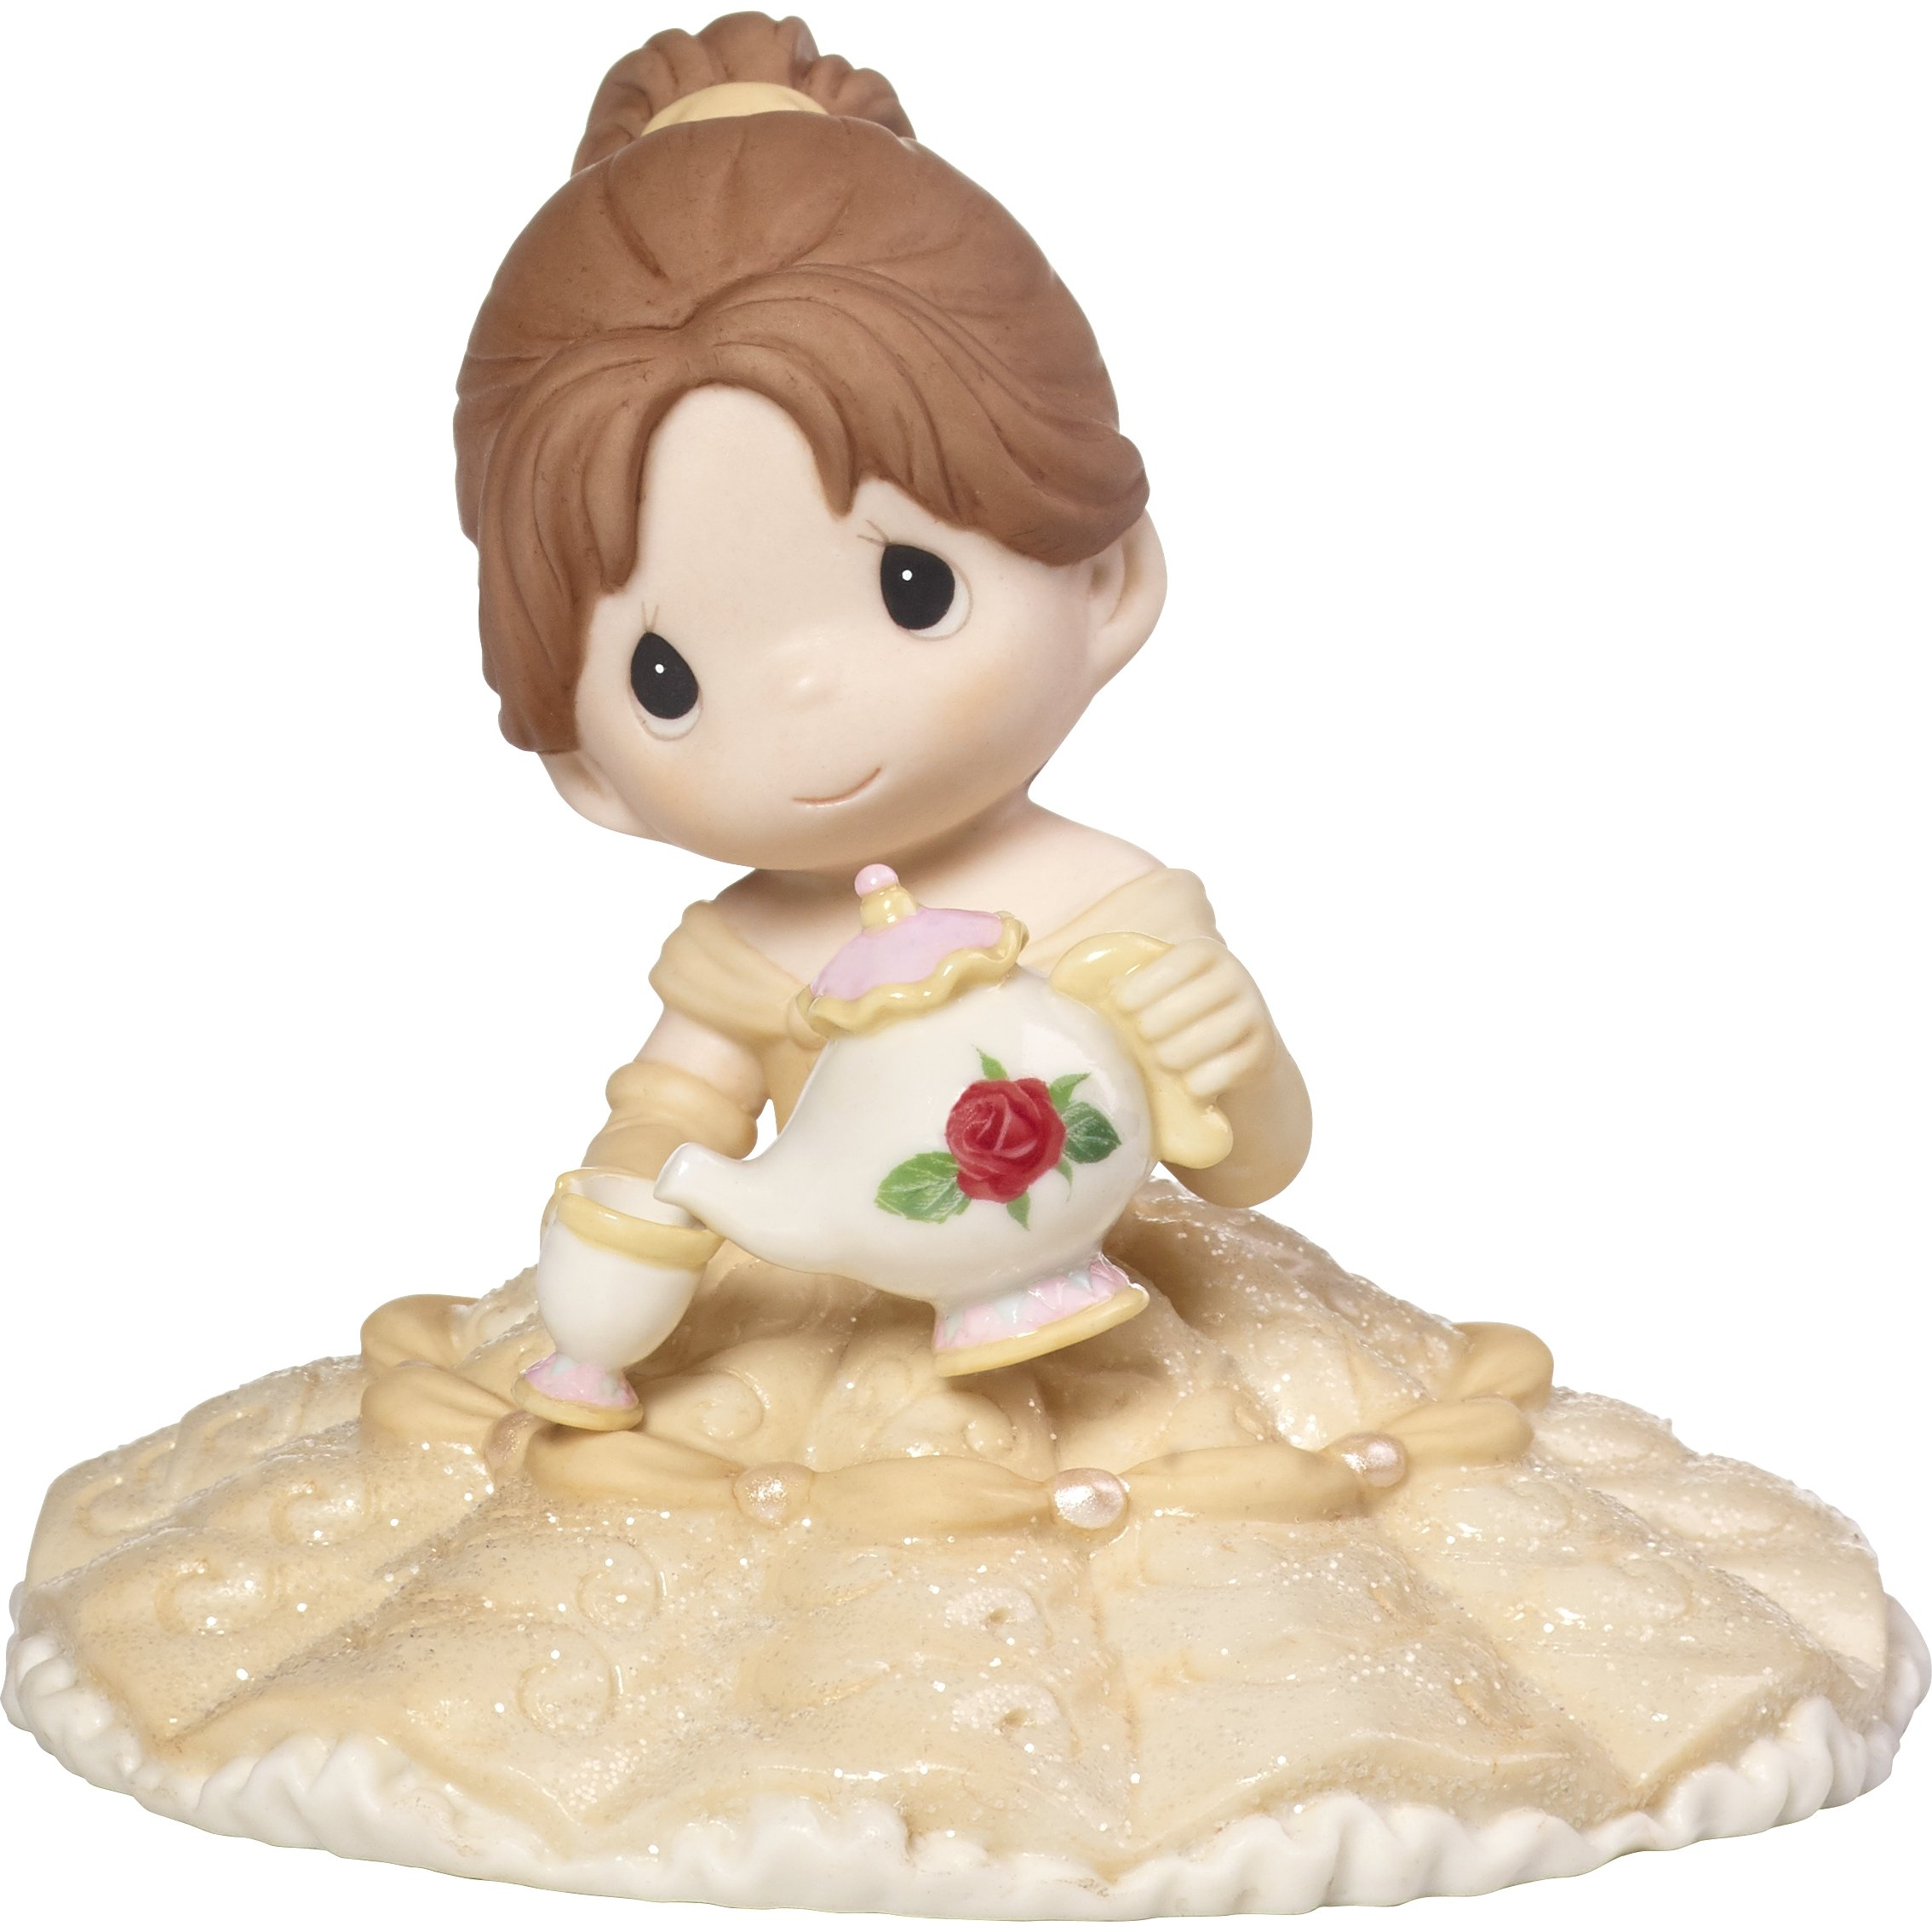 Precious Moments Disney Belle You're My Missing Piece Poreclain Figurine or Cake Topper 173092 by Precious Moments (Image #1)